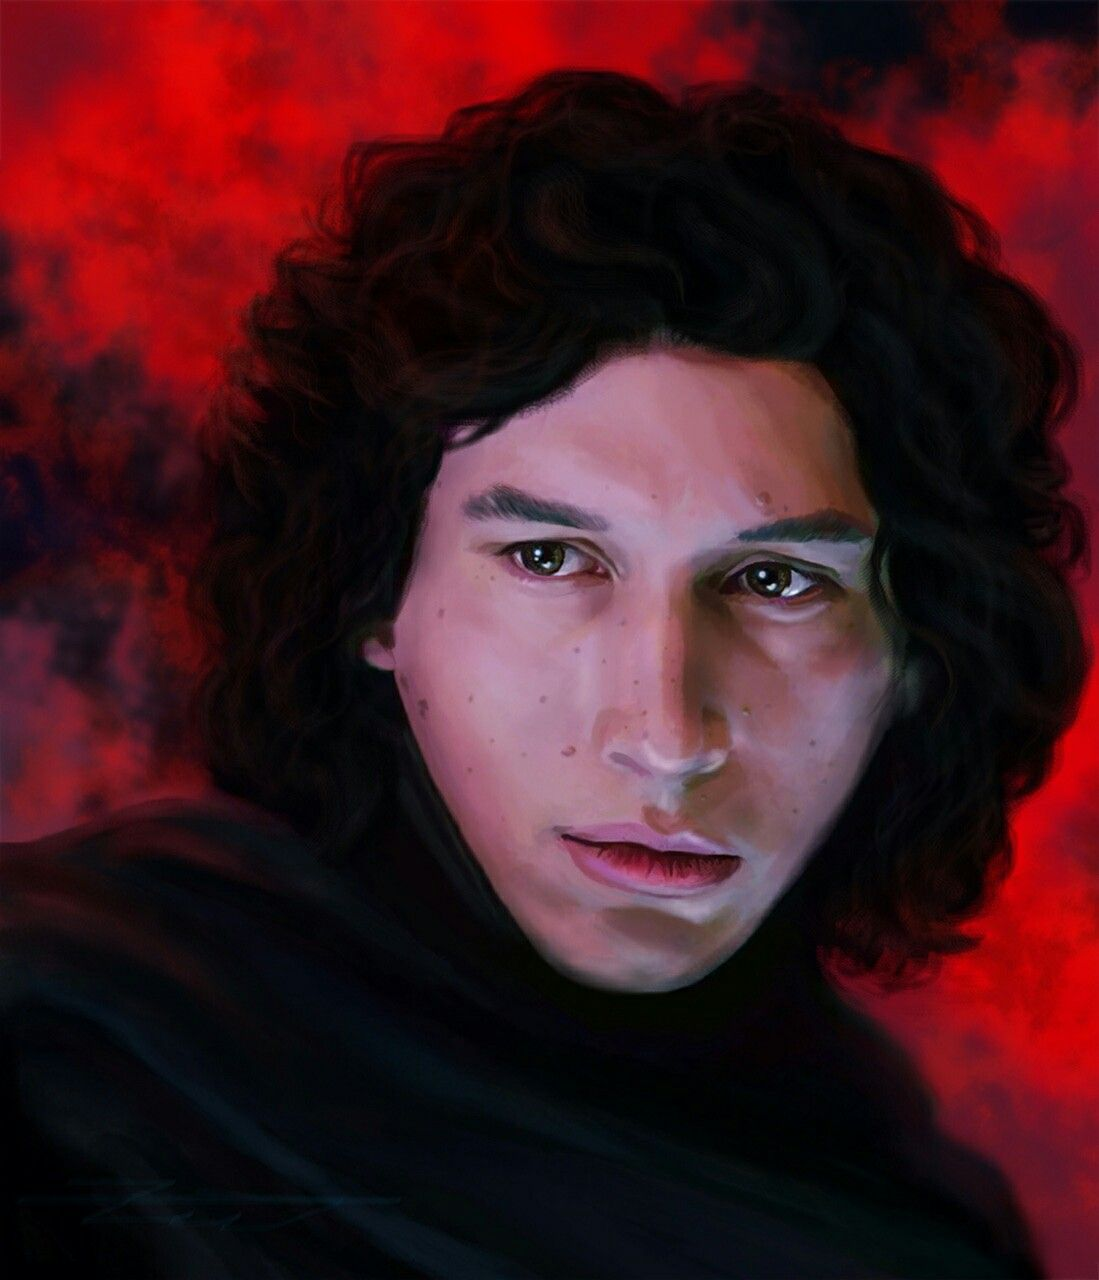 Kylo Ren Formerly Known As Ben Solo Was The Only Son Of